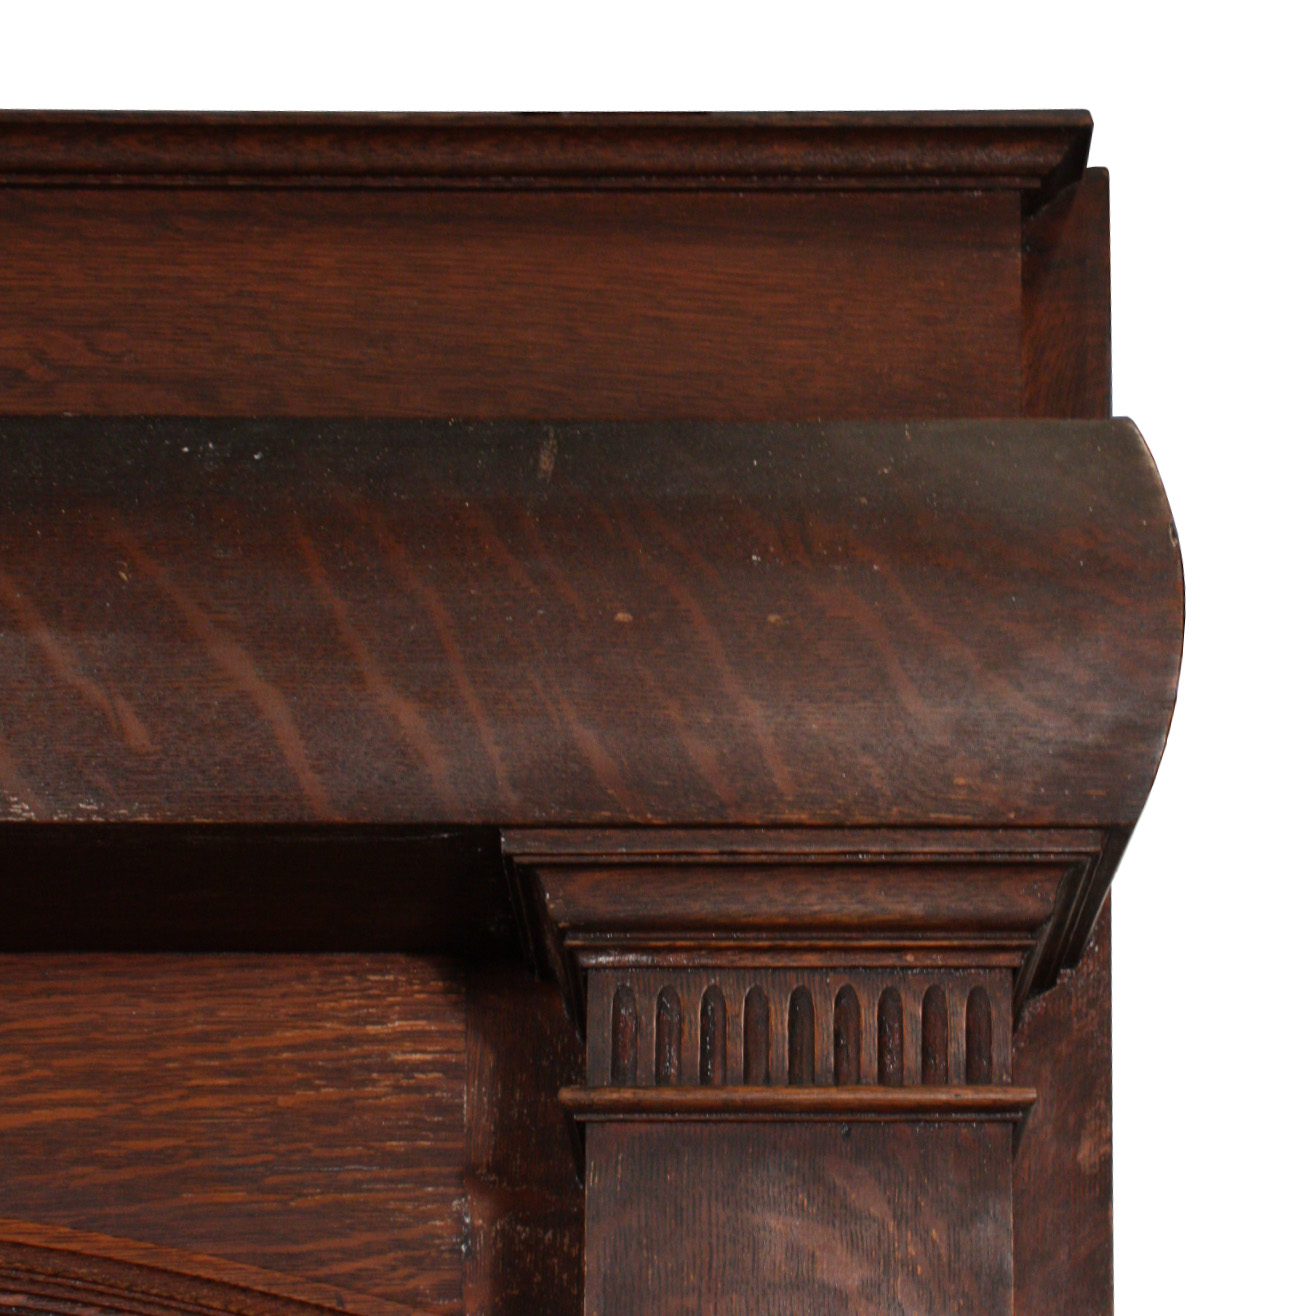 substantial antique quarter sawn oak fireplace mantel with arched